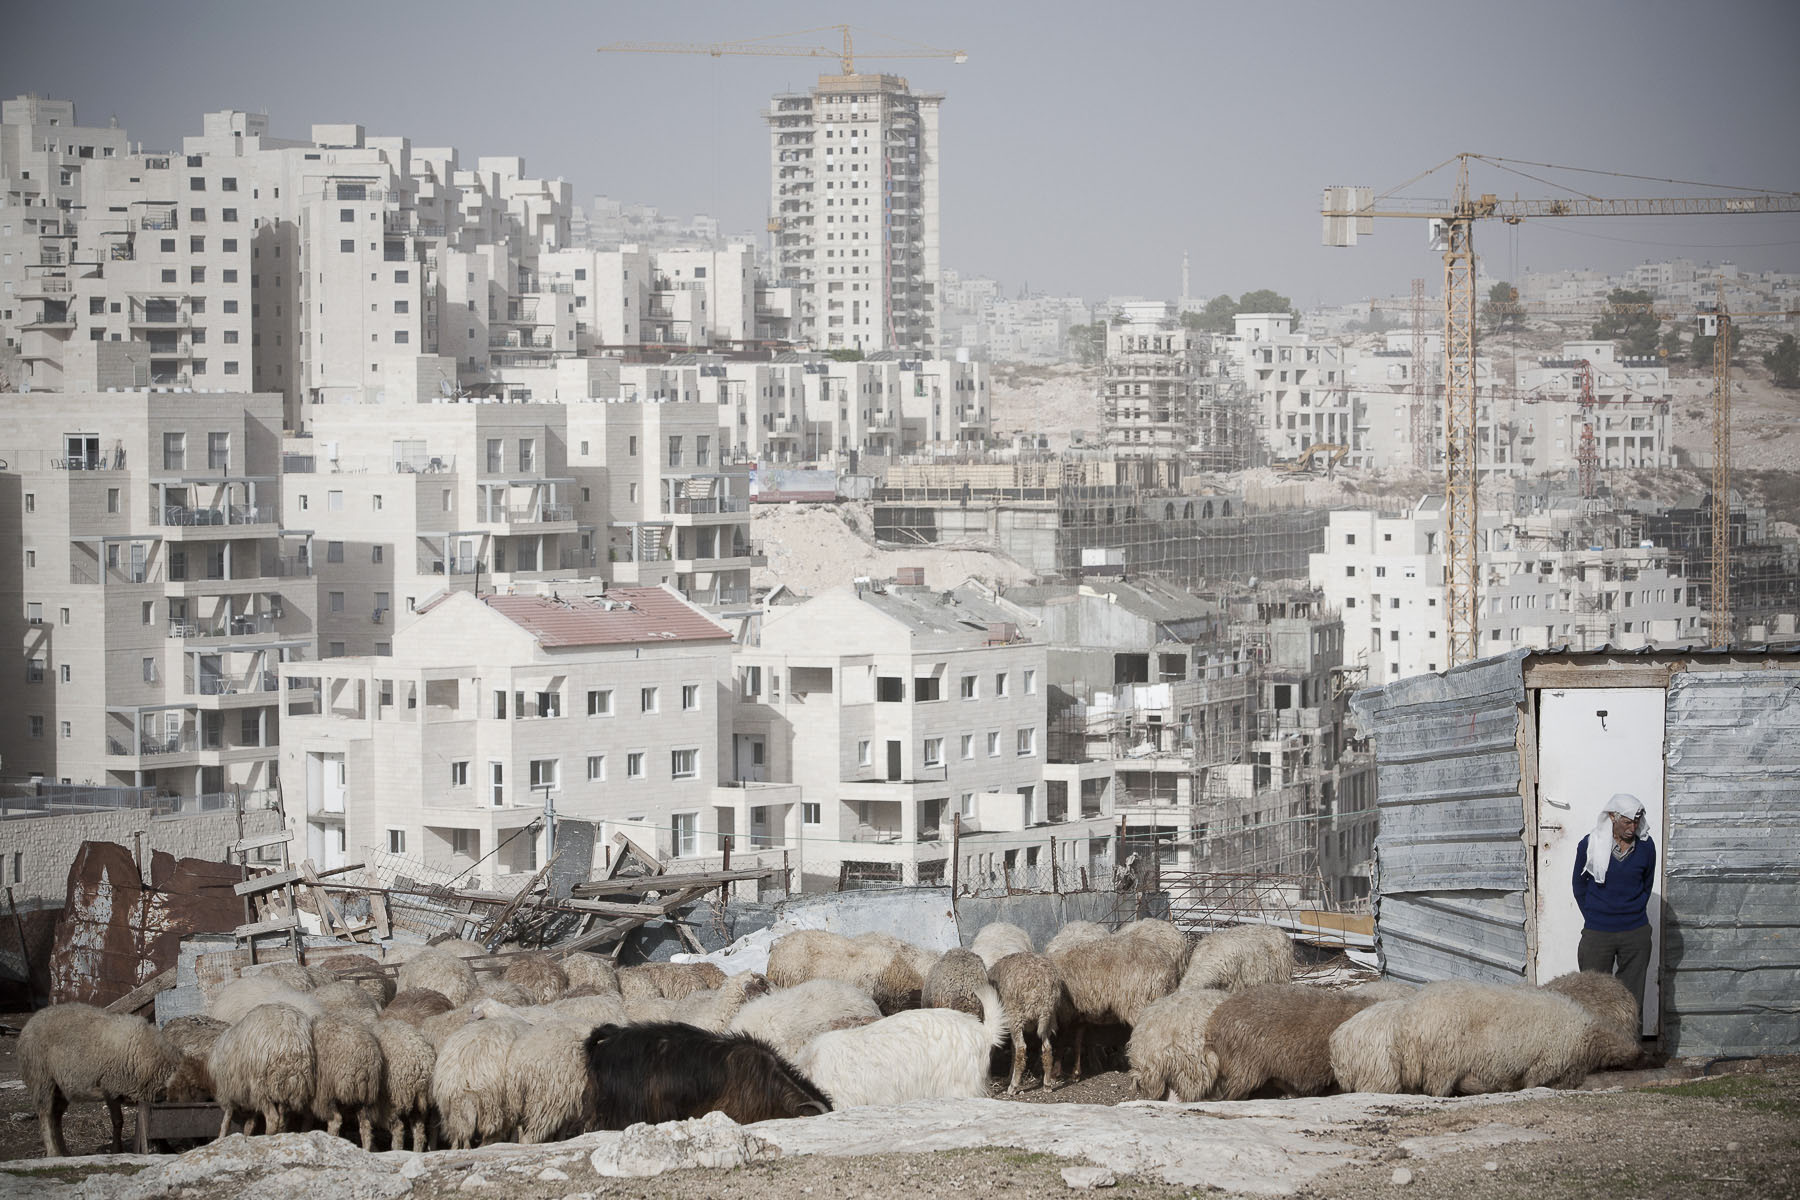 A Palestinian sheperd watching his flock in front of the Har Homa Israeli colony in construction in November 2009